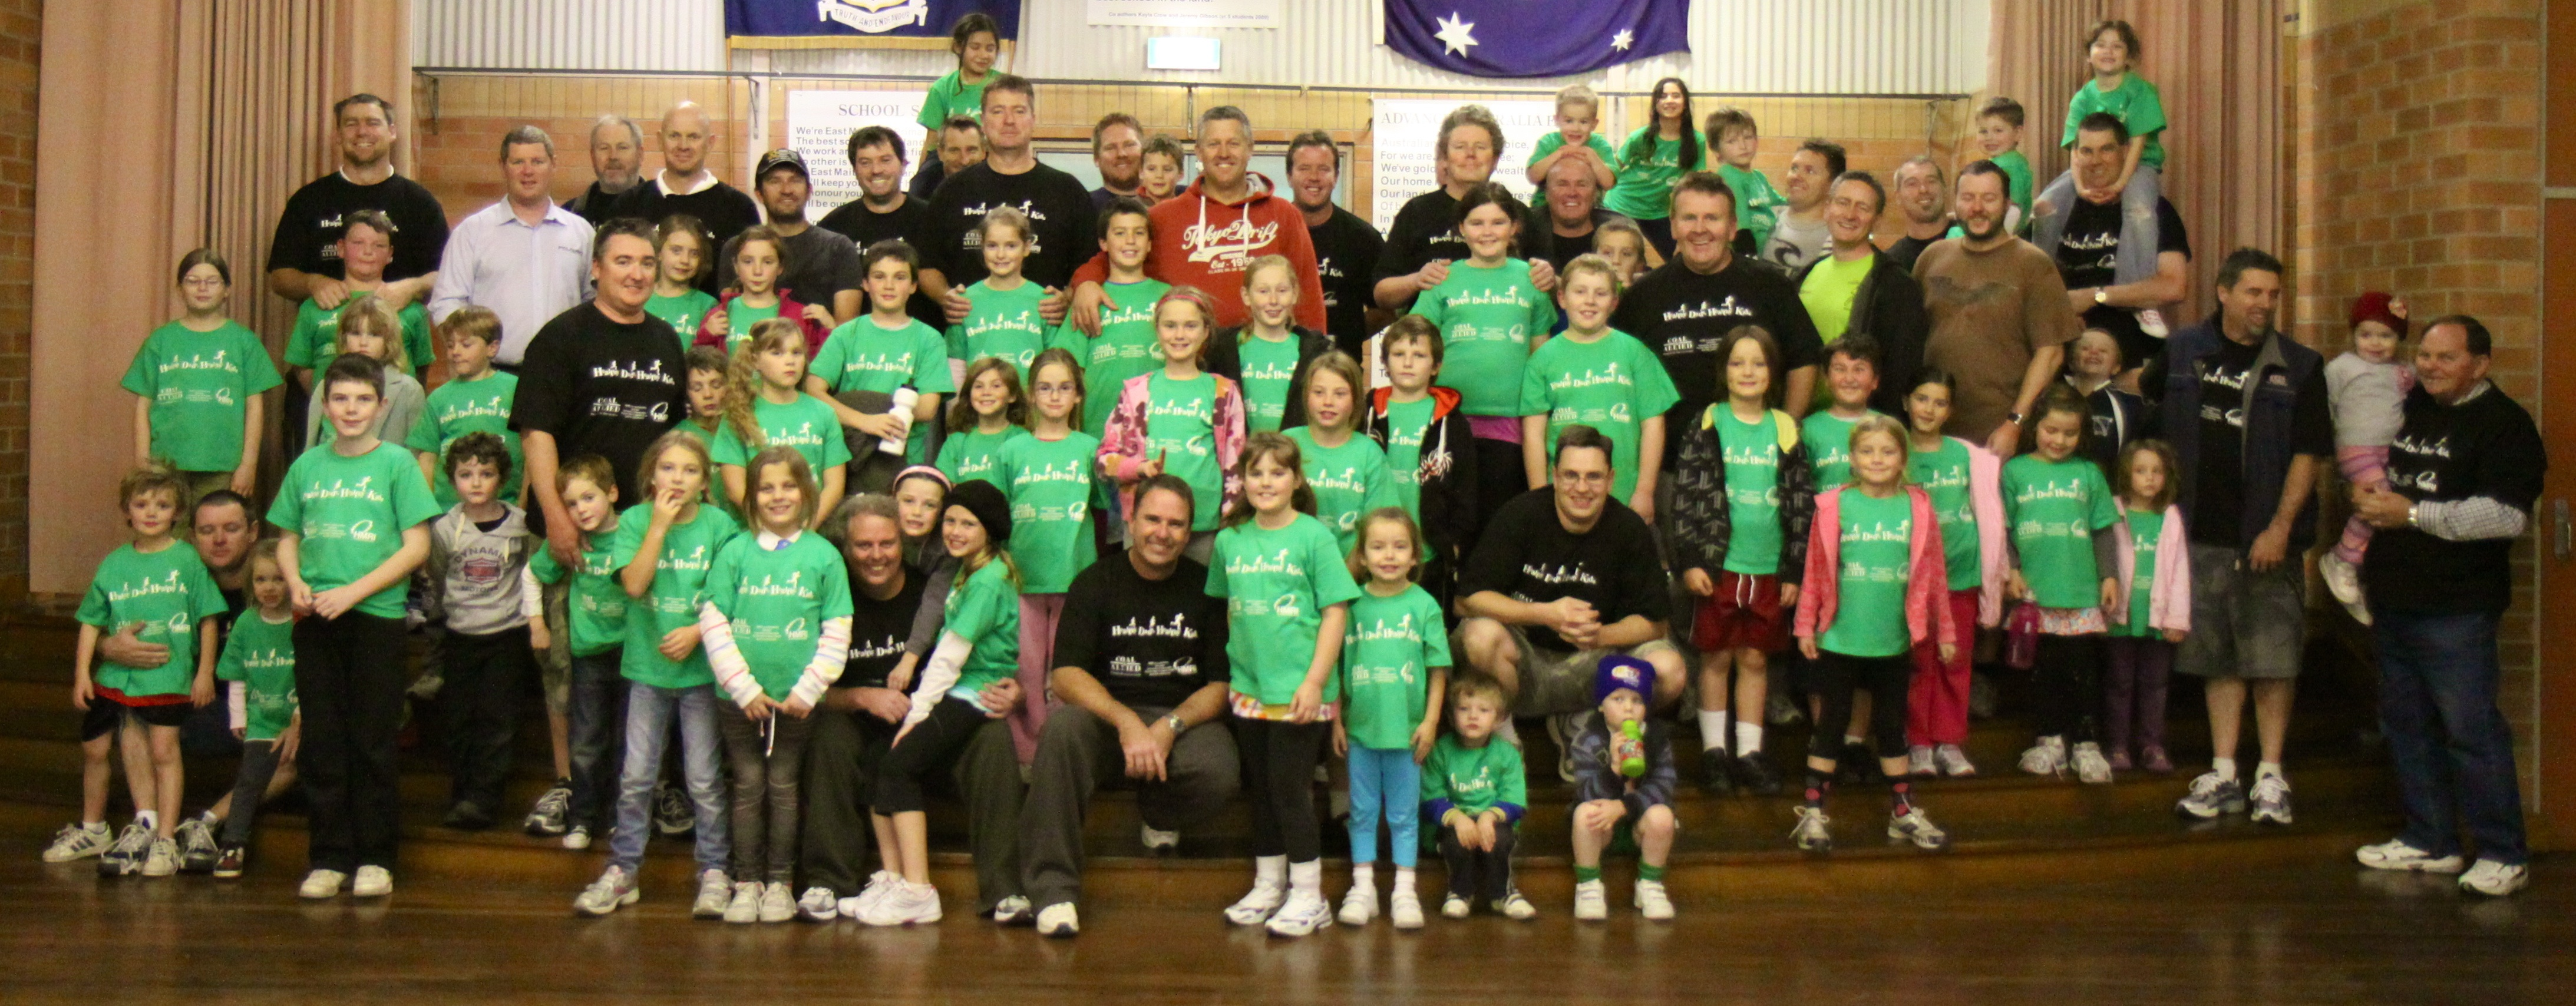 The Healthy Dads, Healthy Kids journey begins in Maitland